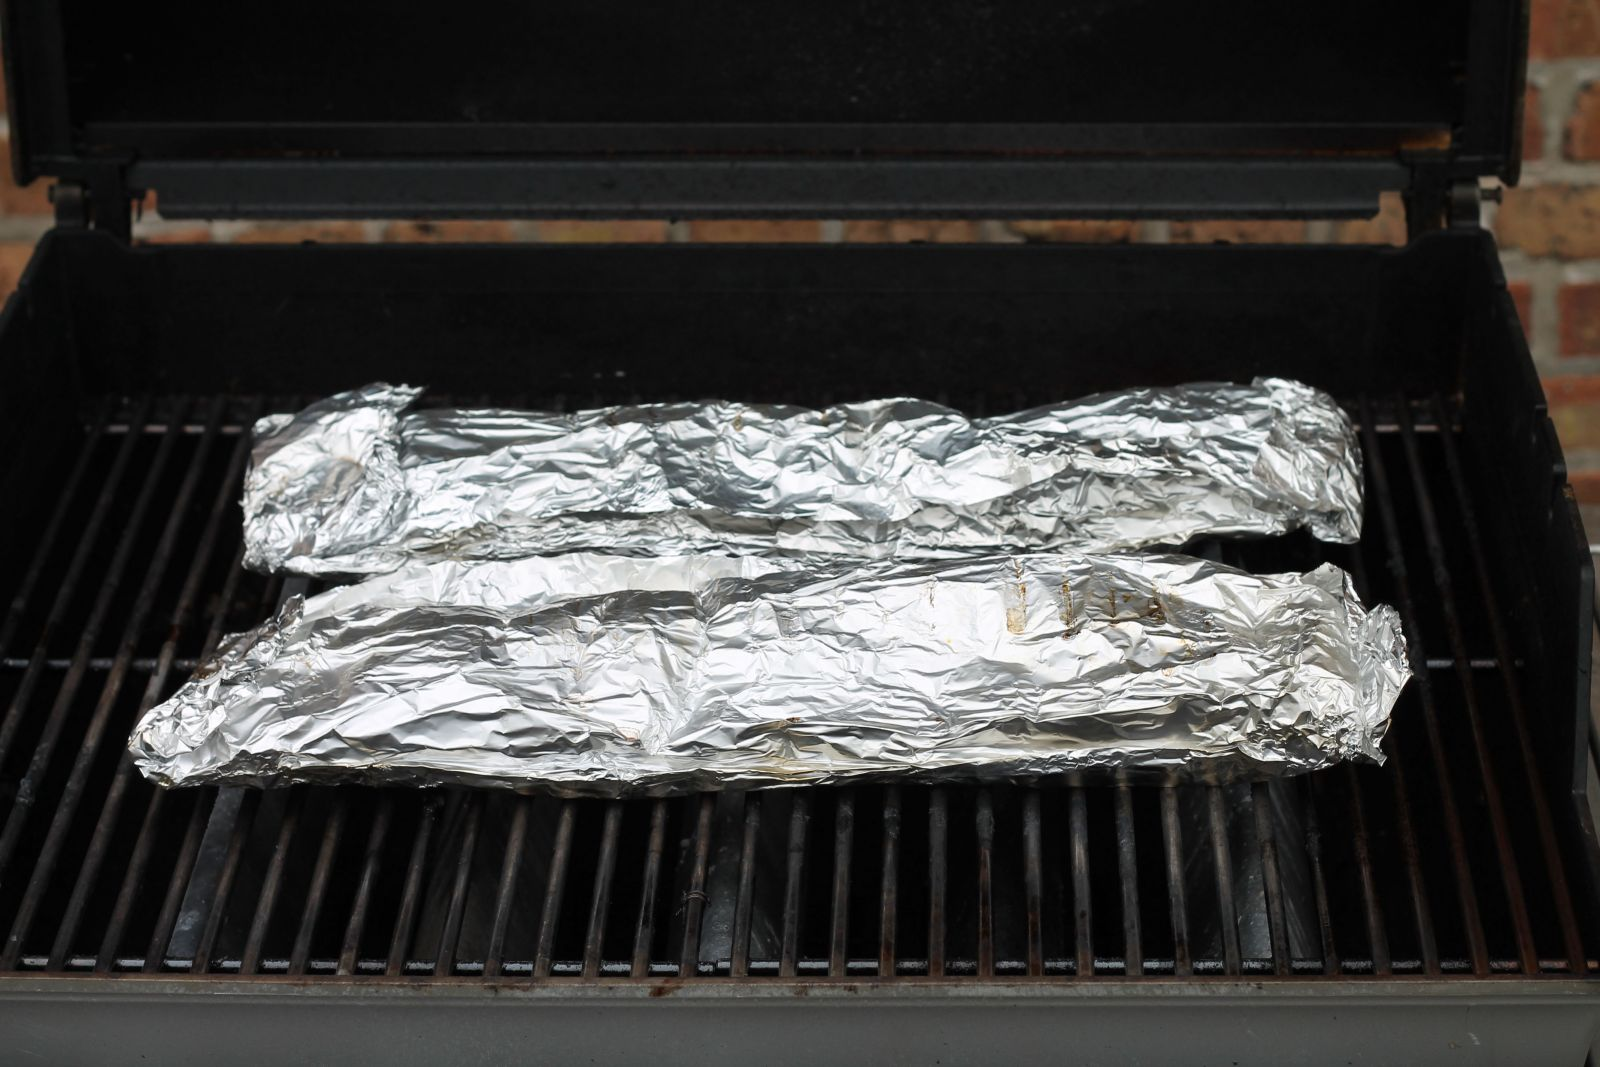 Packets of foil-wrapped ribs on the grill